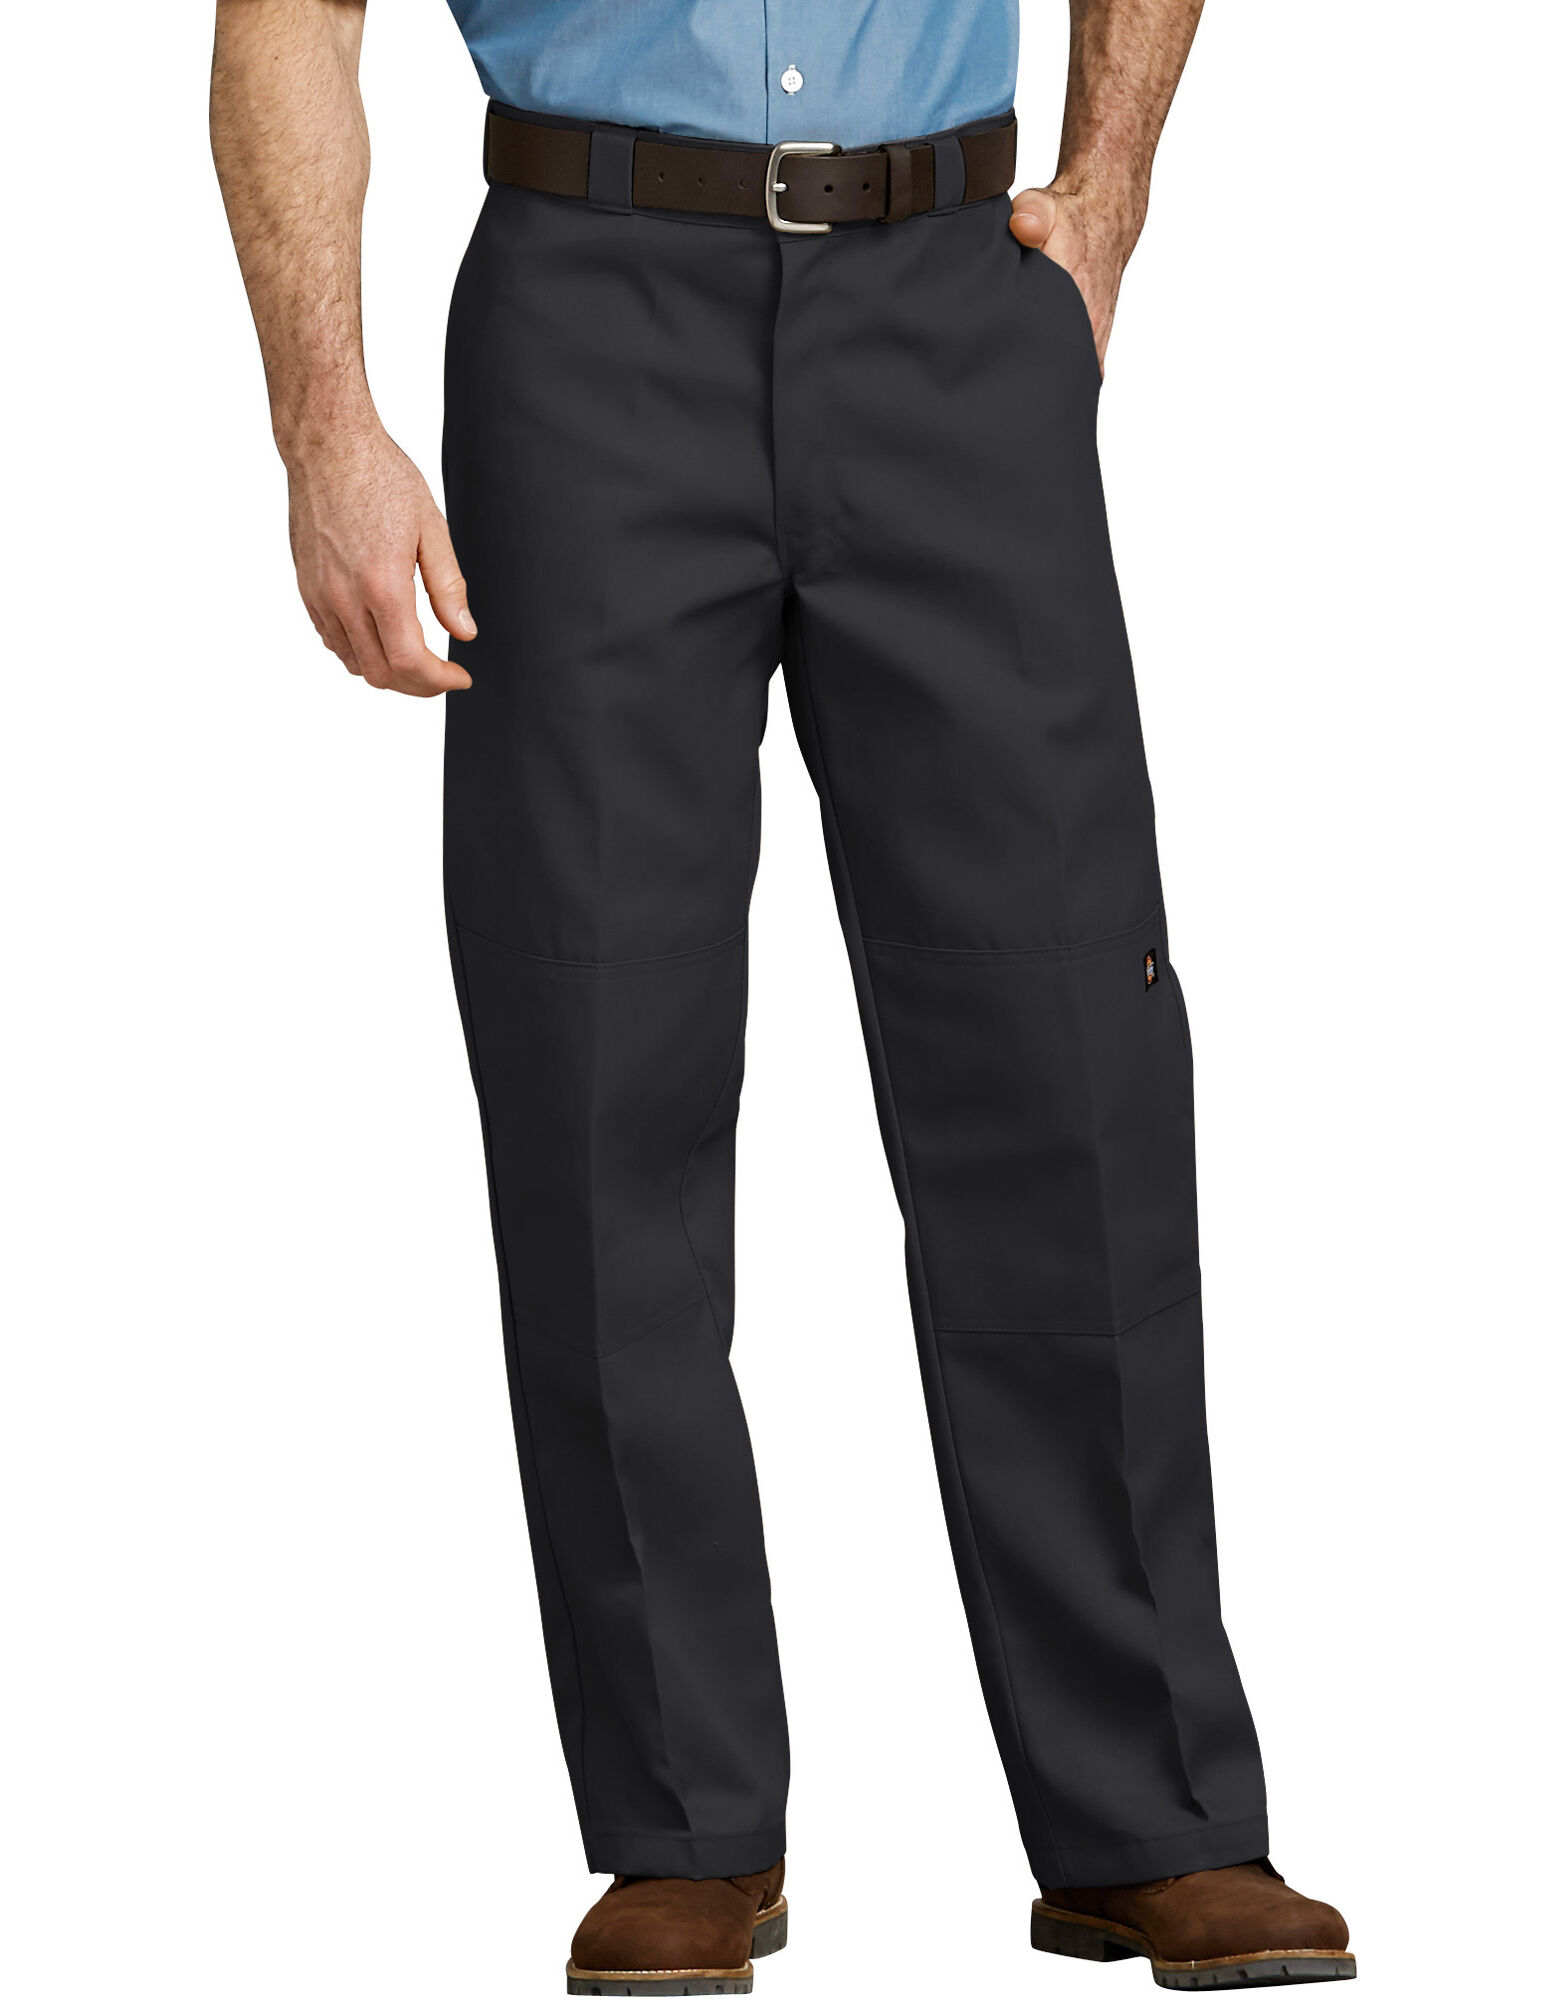 Cargo Pants for Men, Work Pants and Carpenter Pants - Duluth Trading